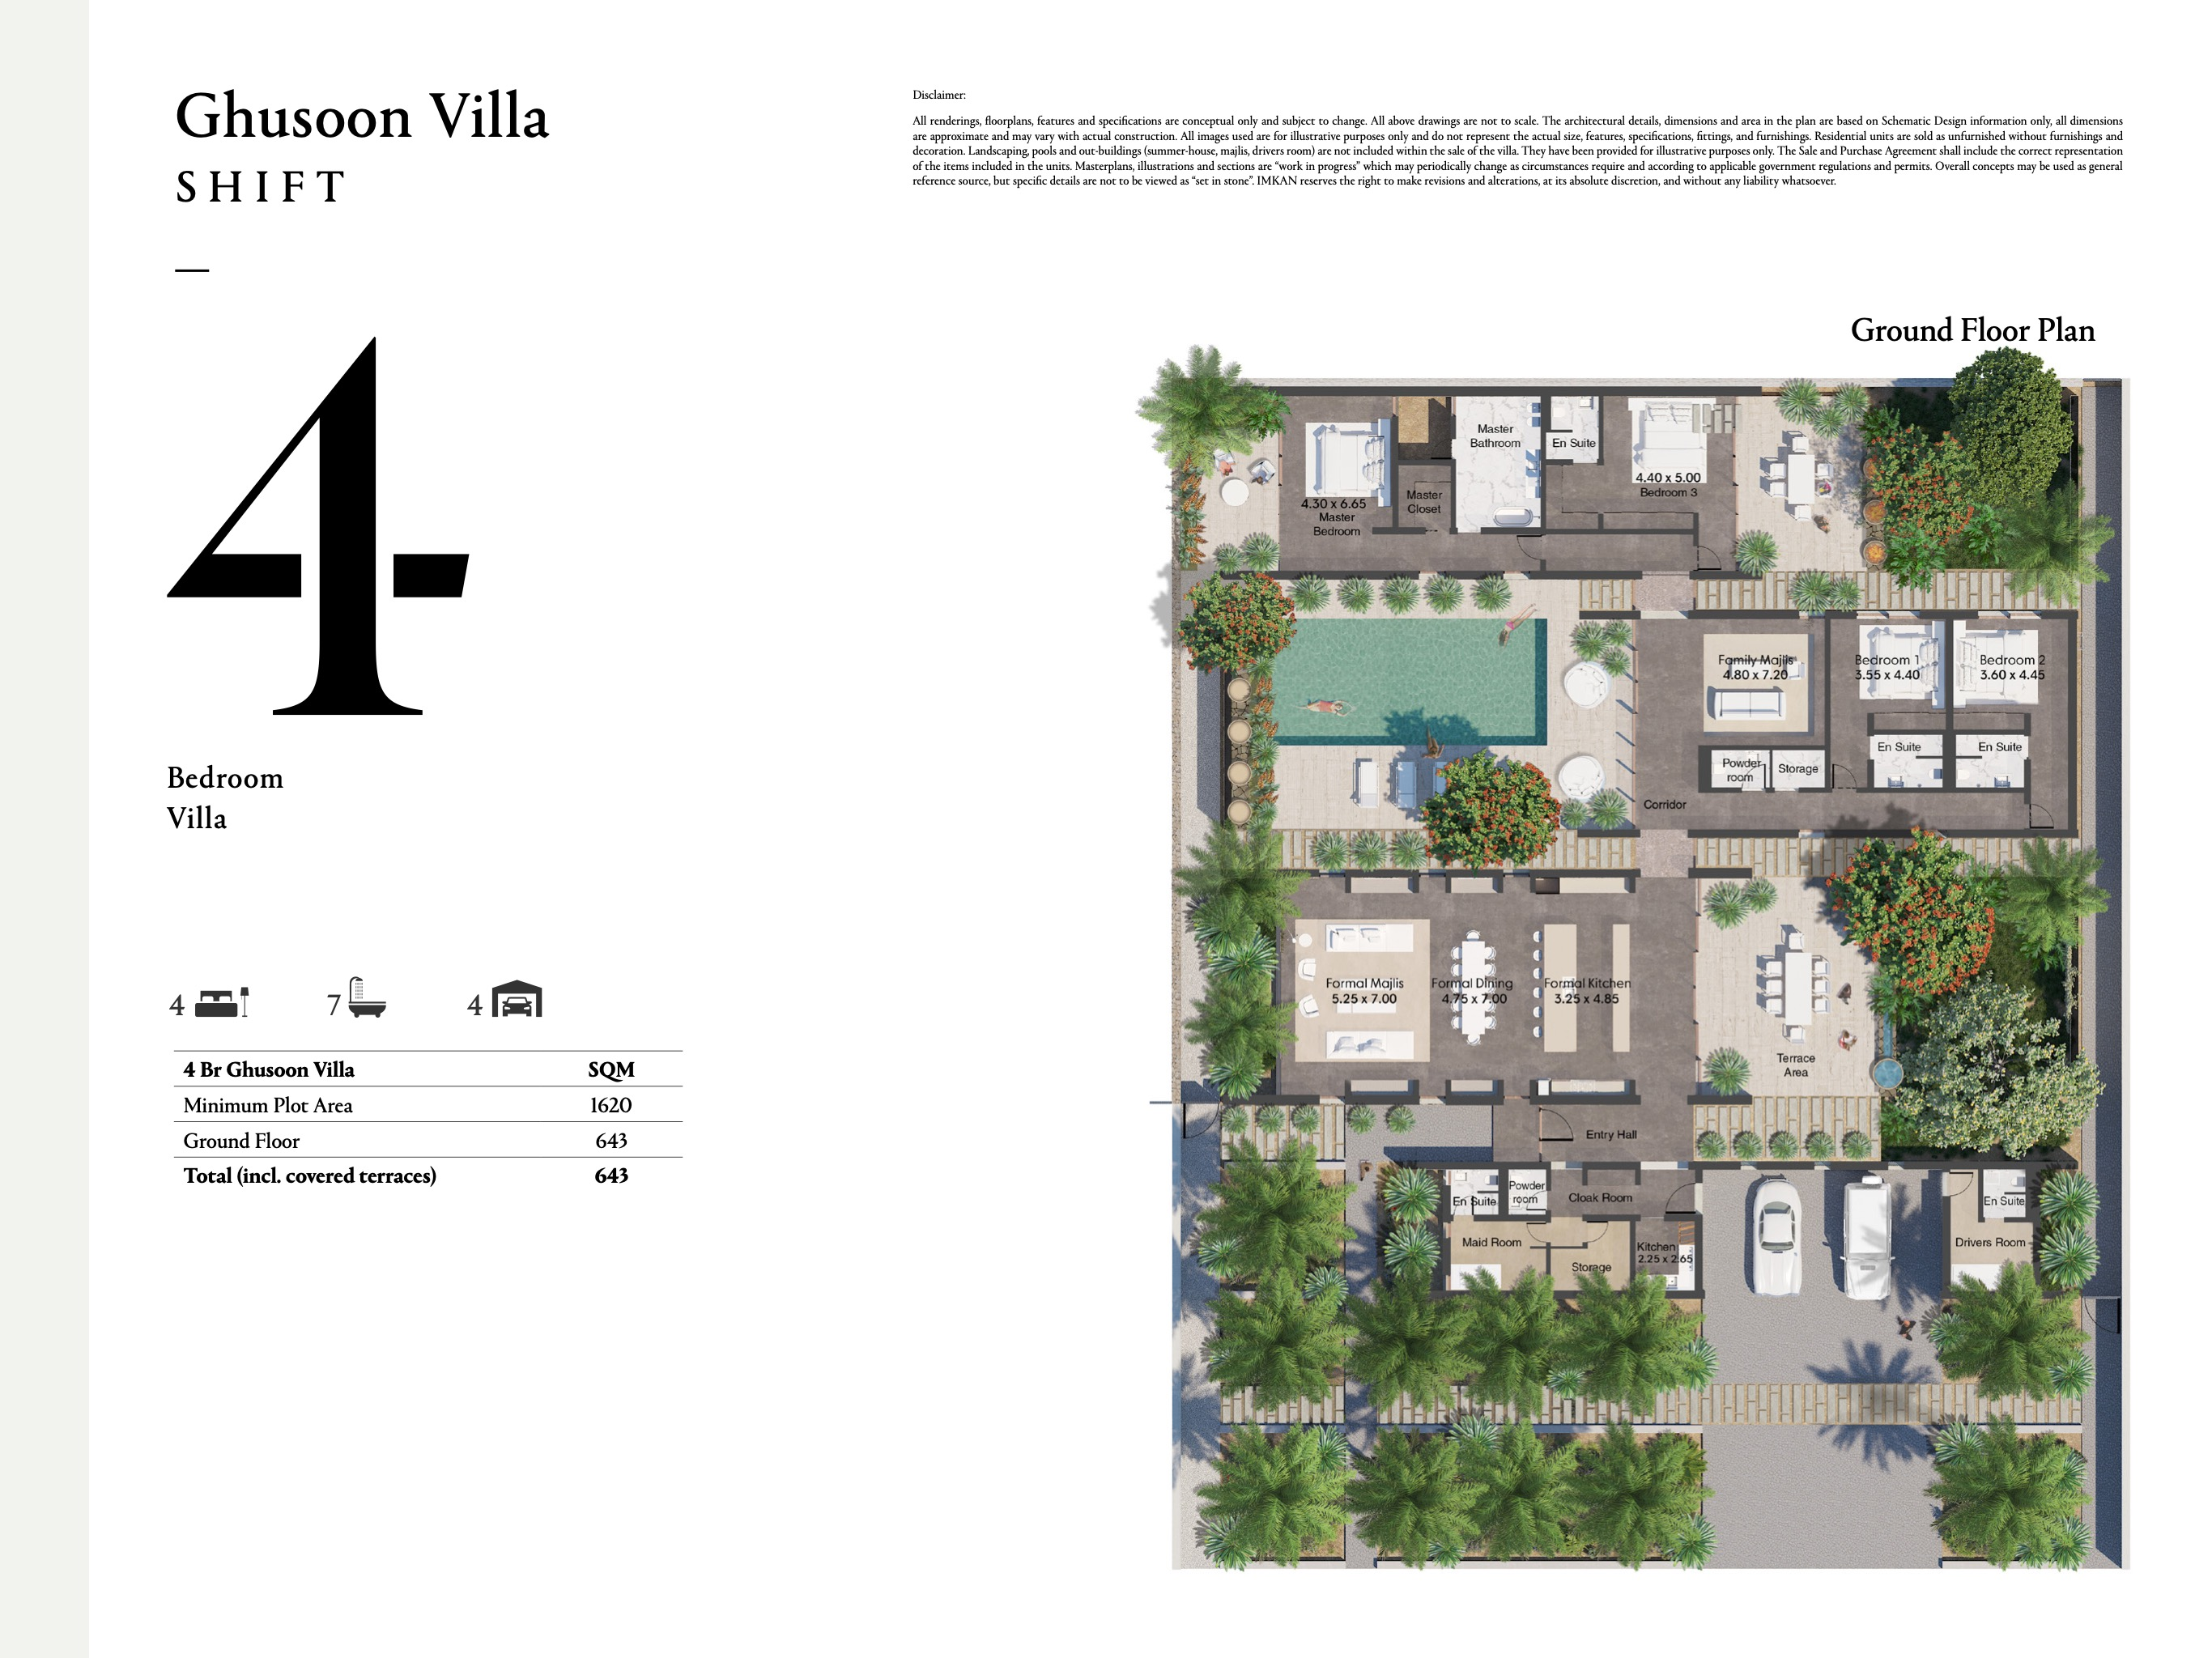 Ghusoon Villa - 4 Bedroom with a size area of 643 sqm